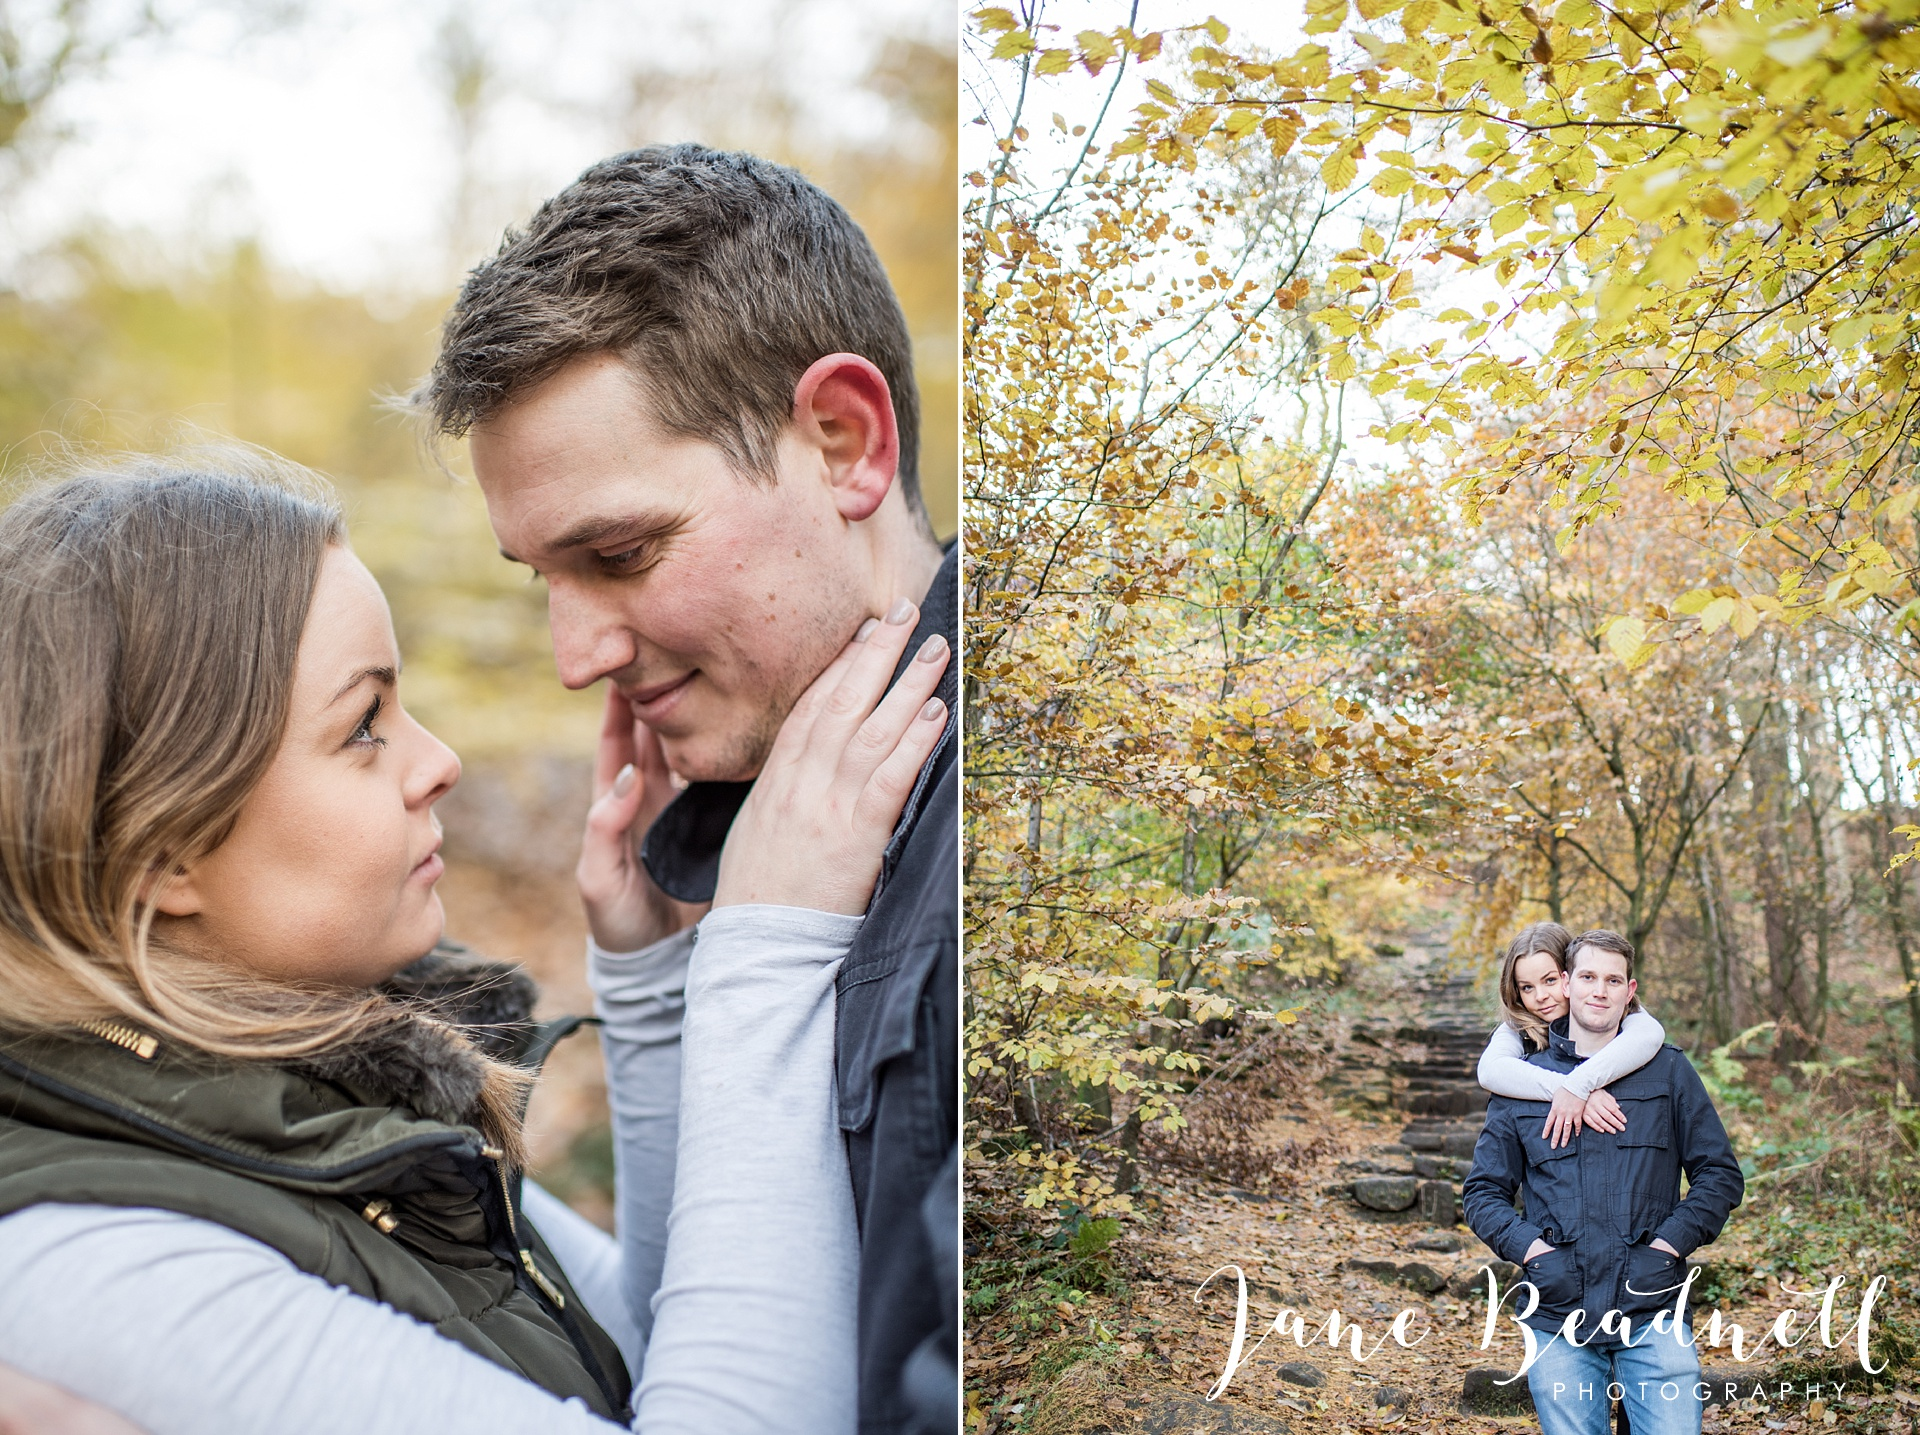 engagement-shoot-yorkshire-wedding-photographer-jane-beadnell-photography-uk-and-destination-wedding-photographer-engagement-shoot_0021